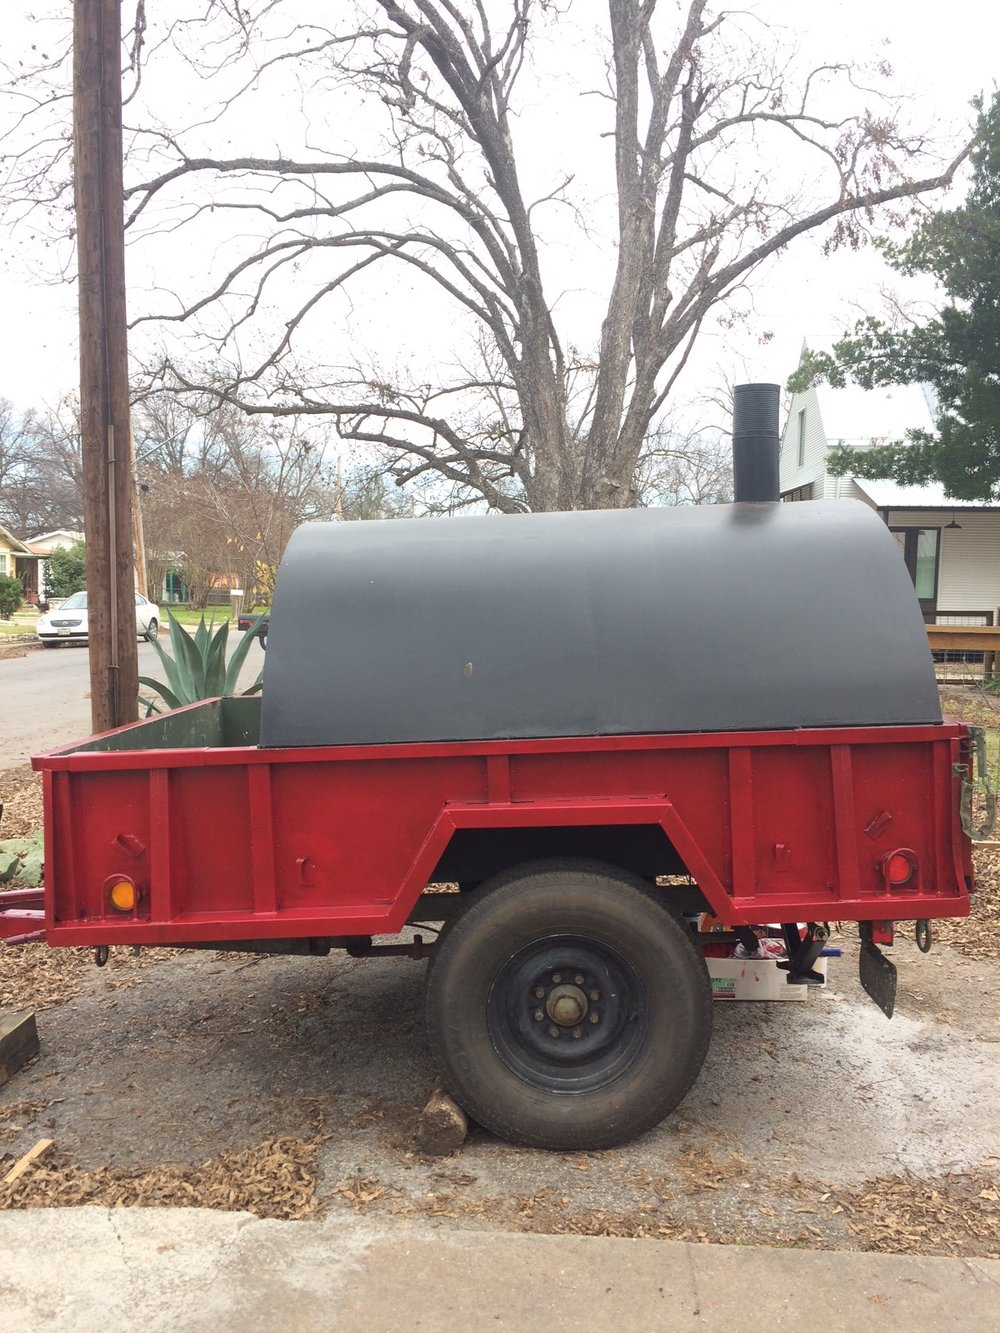 Mobile Wood Fired Pizza Trailer Oven For Sale Start A Catering BusinessJPG